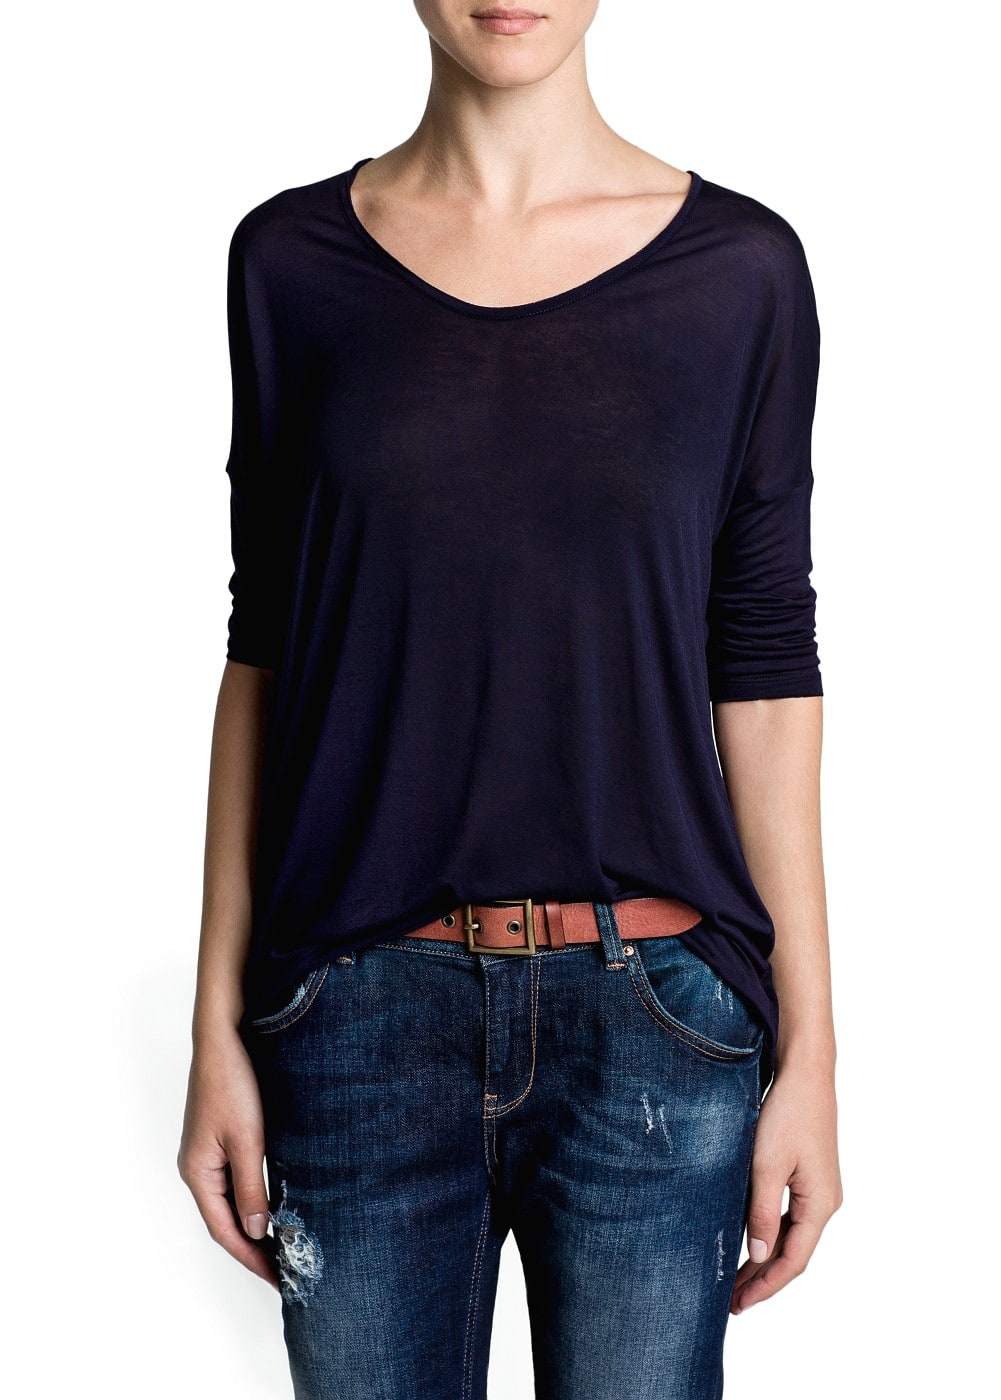 Dolman sleeve lightweight t-shirt